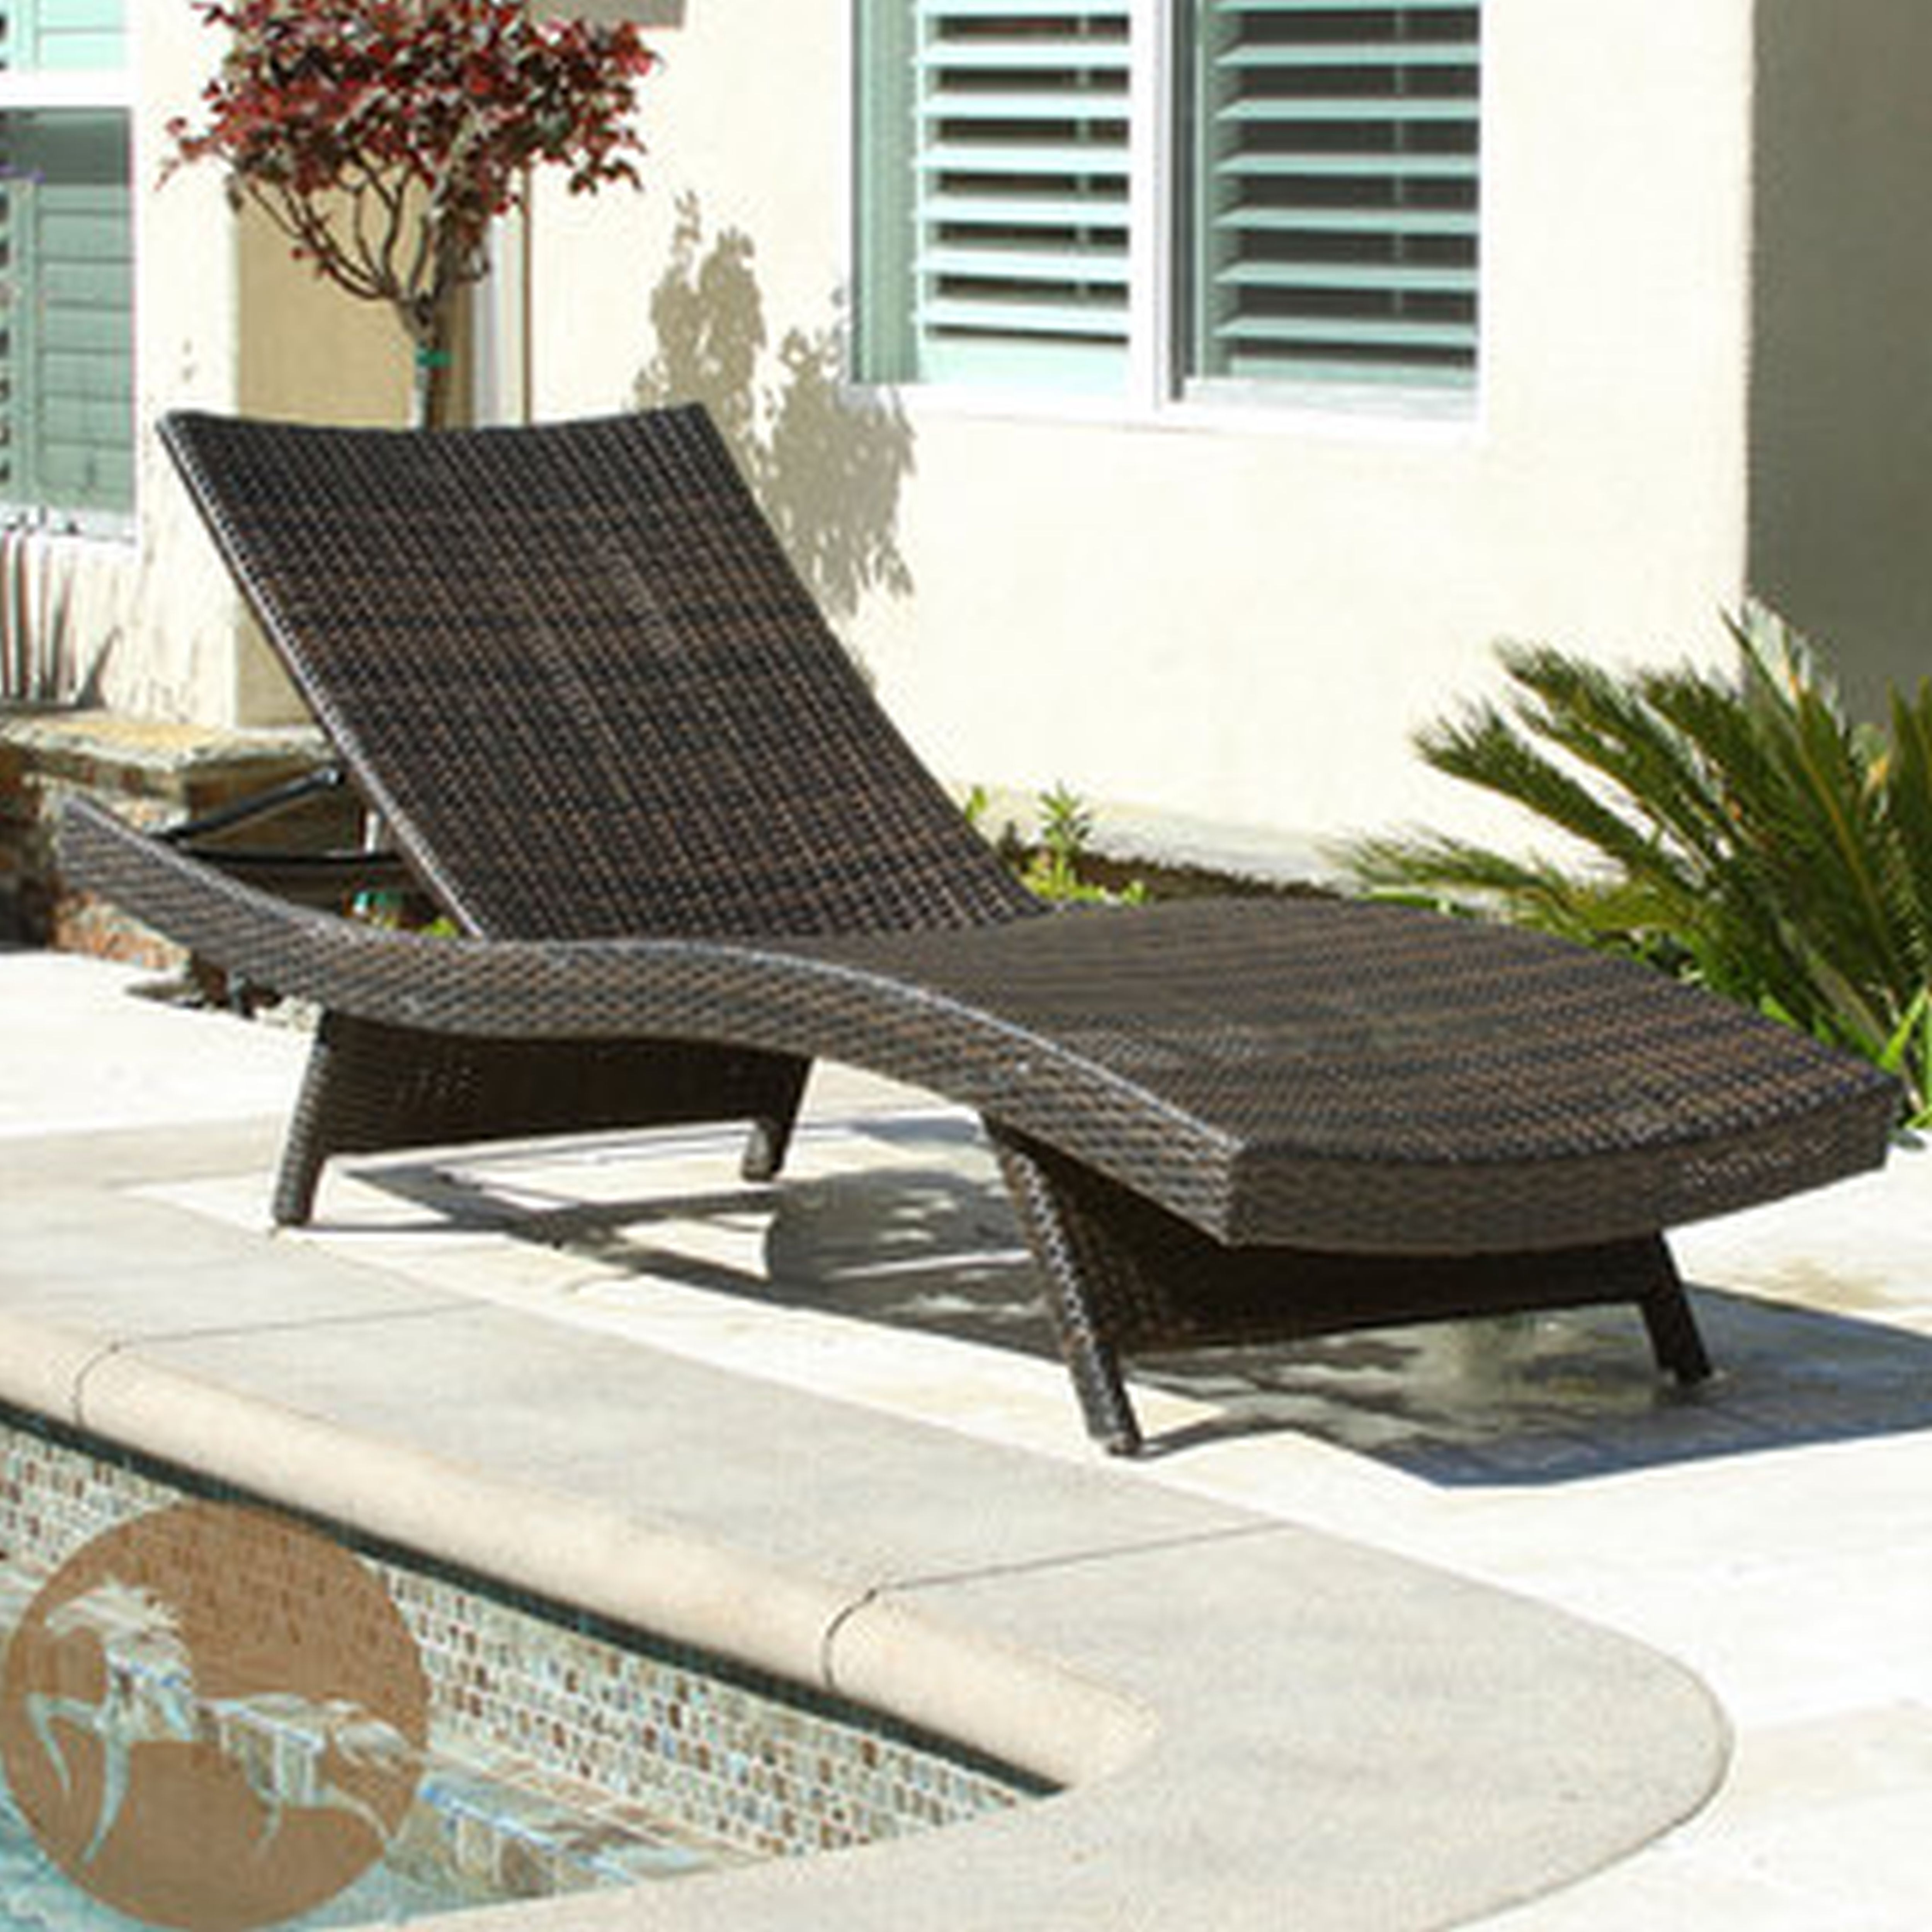 Patio Chaise Lounge As The Must Have Furniture In Your Pool Deck Inside Well Known Outdoor Lounge Chaises (View 11 of 15)